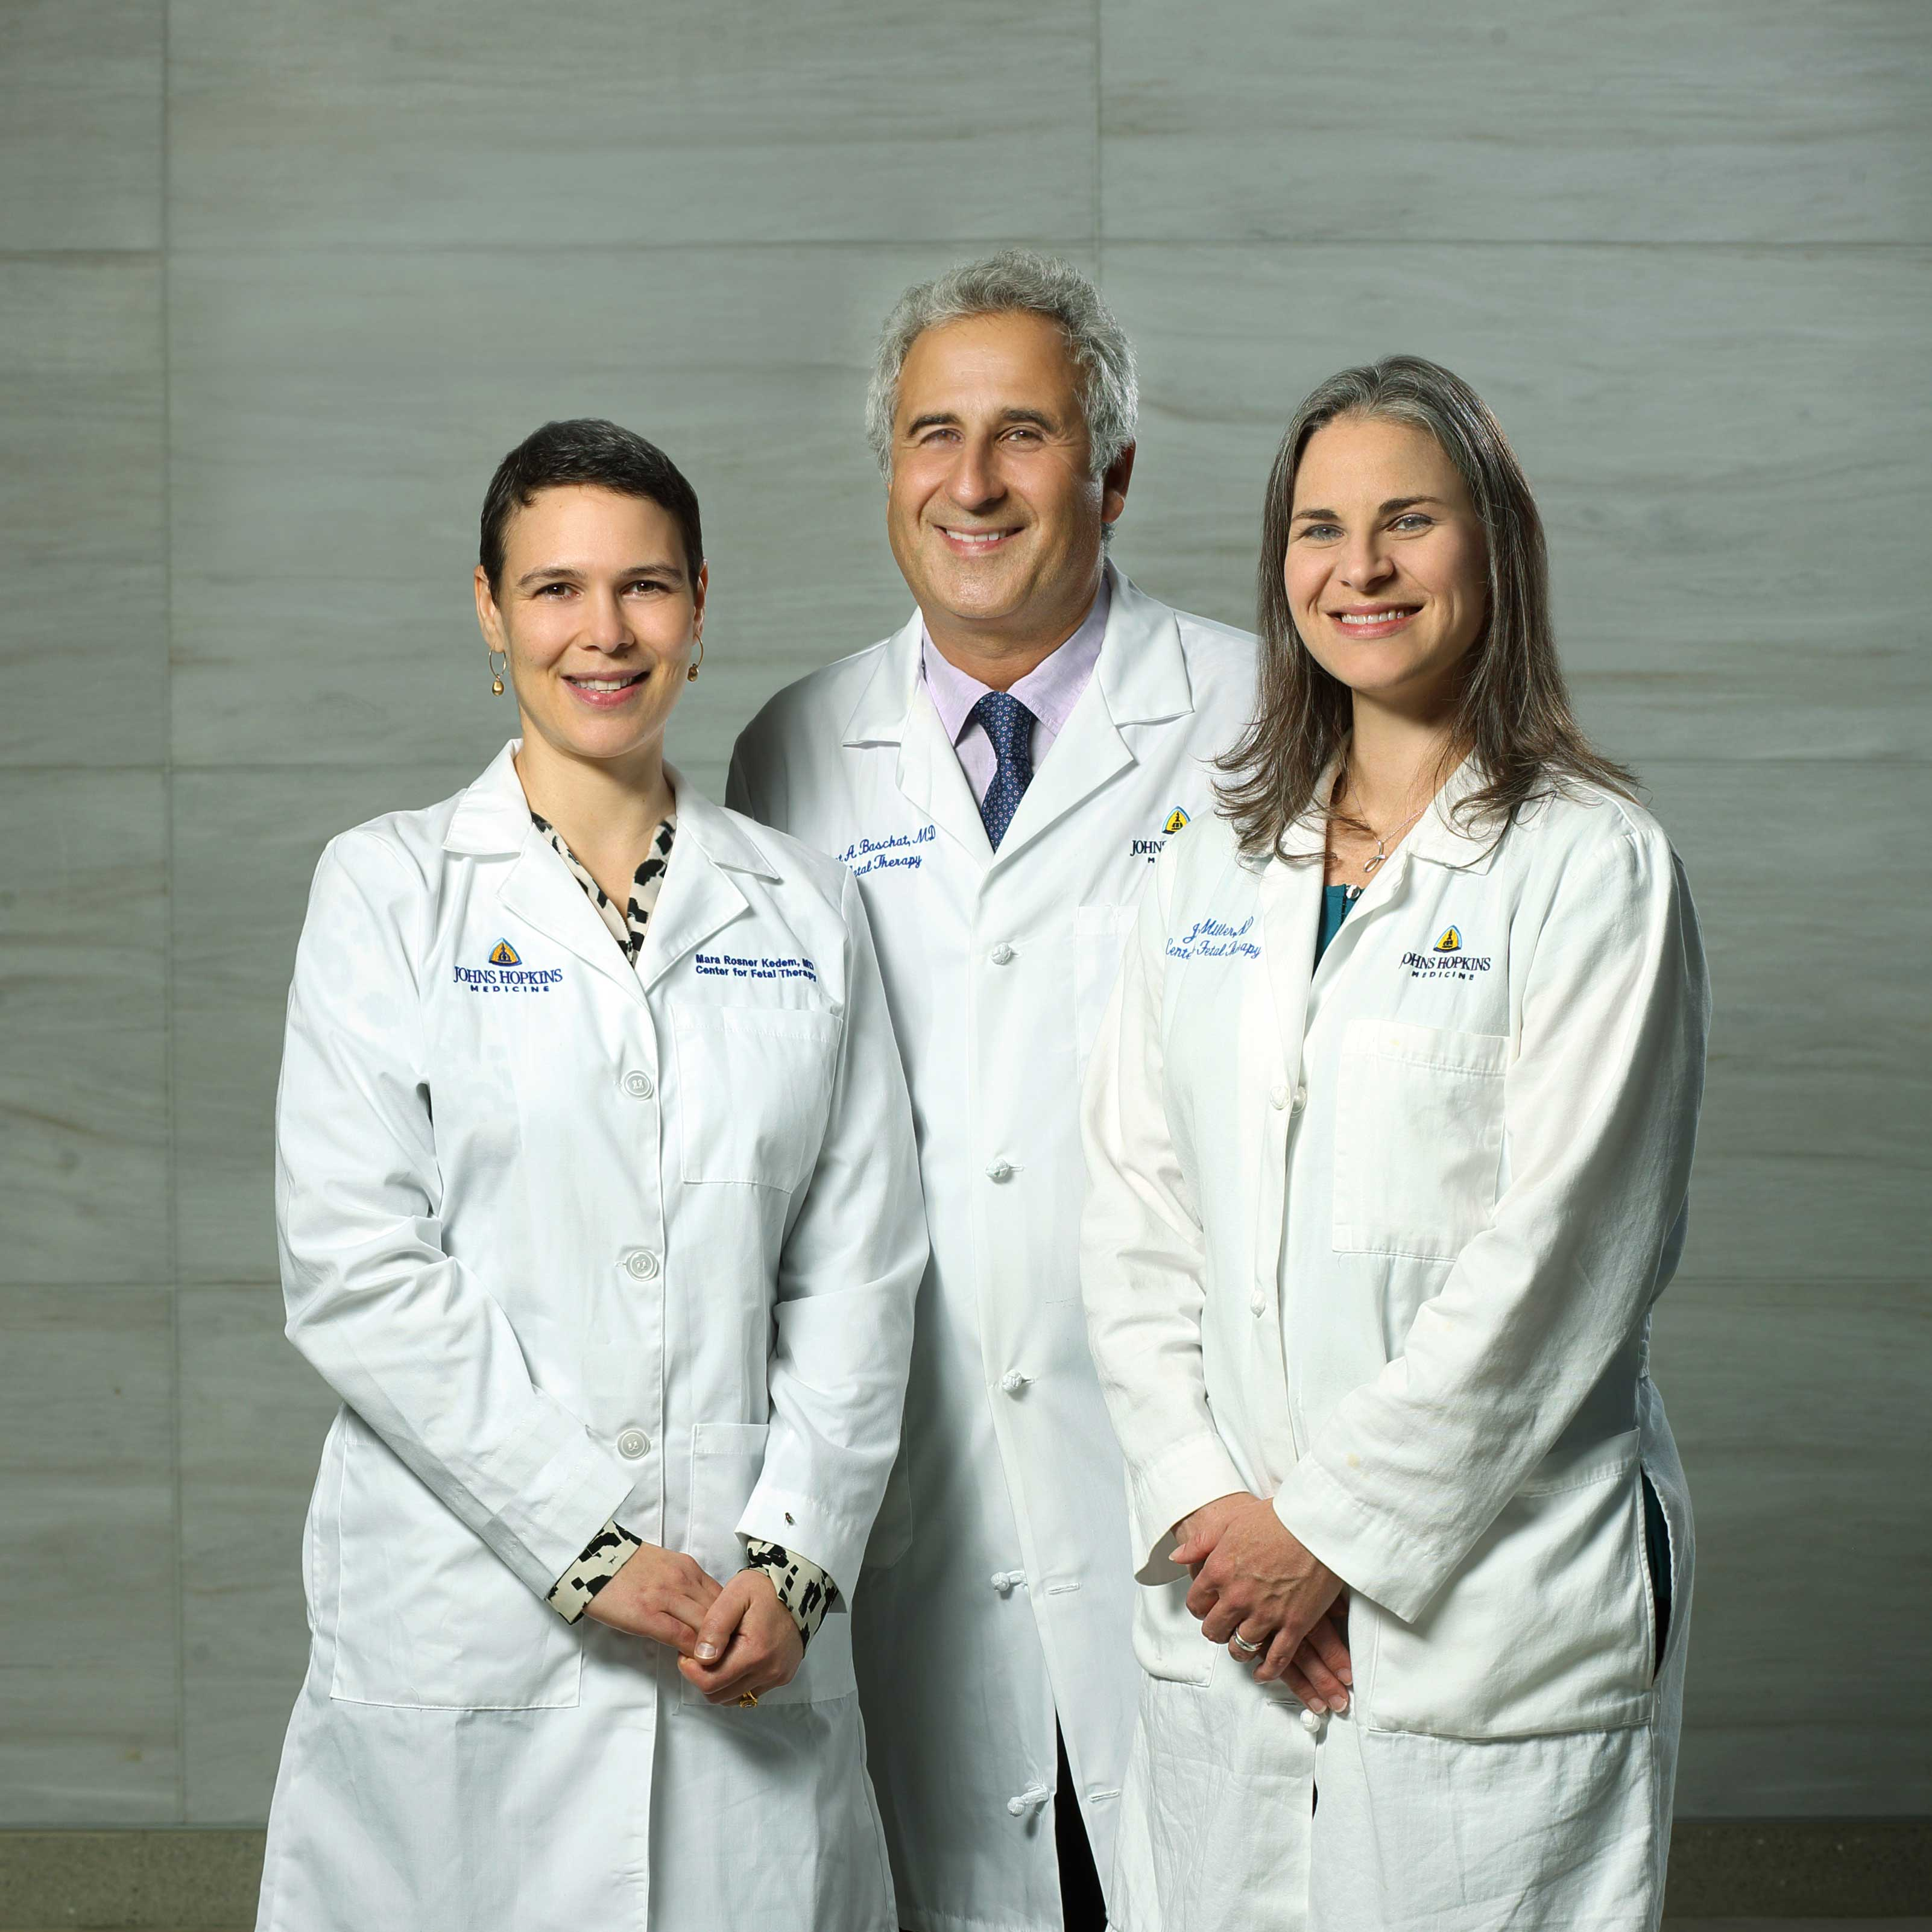 Group photo of Drs Baschat, Miller, and Rosner of the Fetal Therapy team